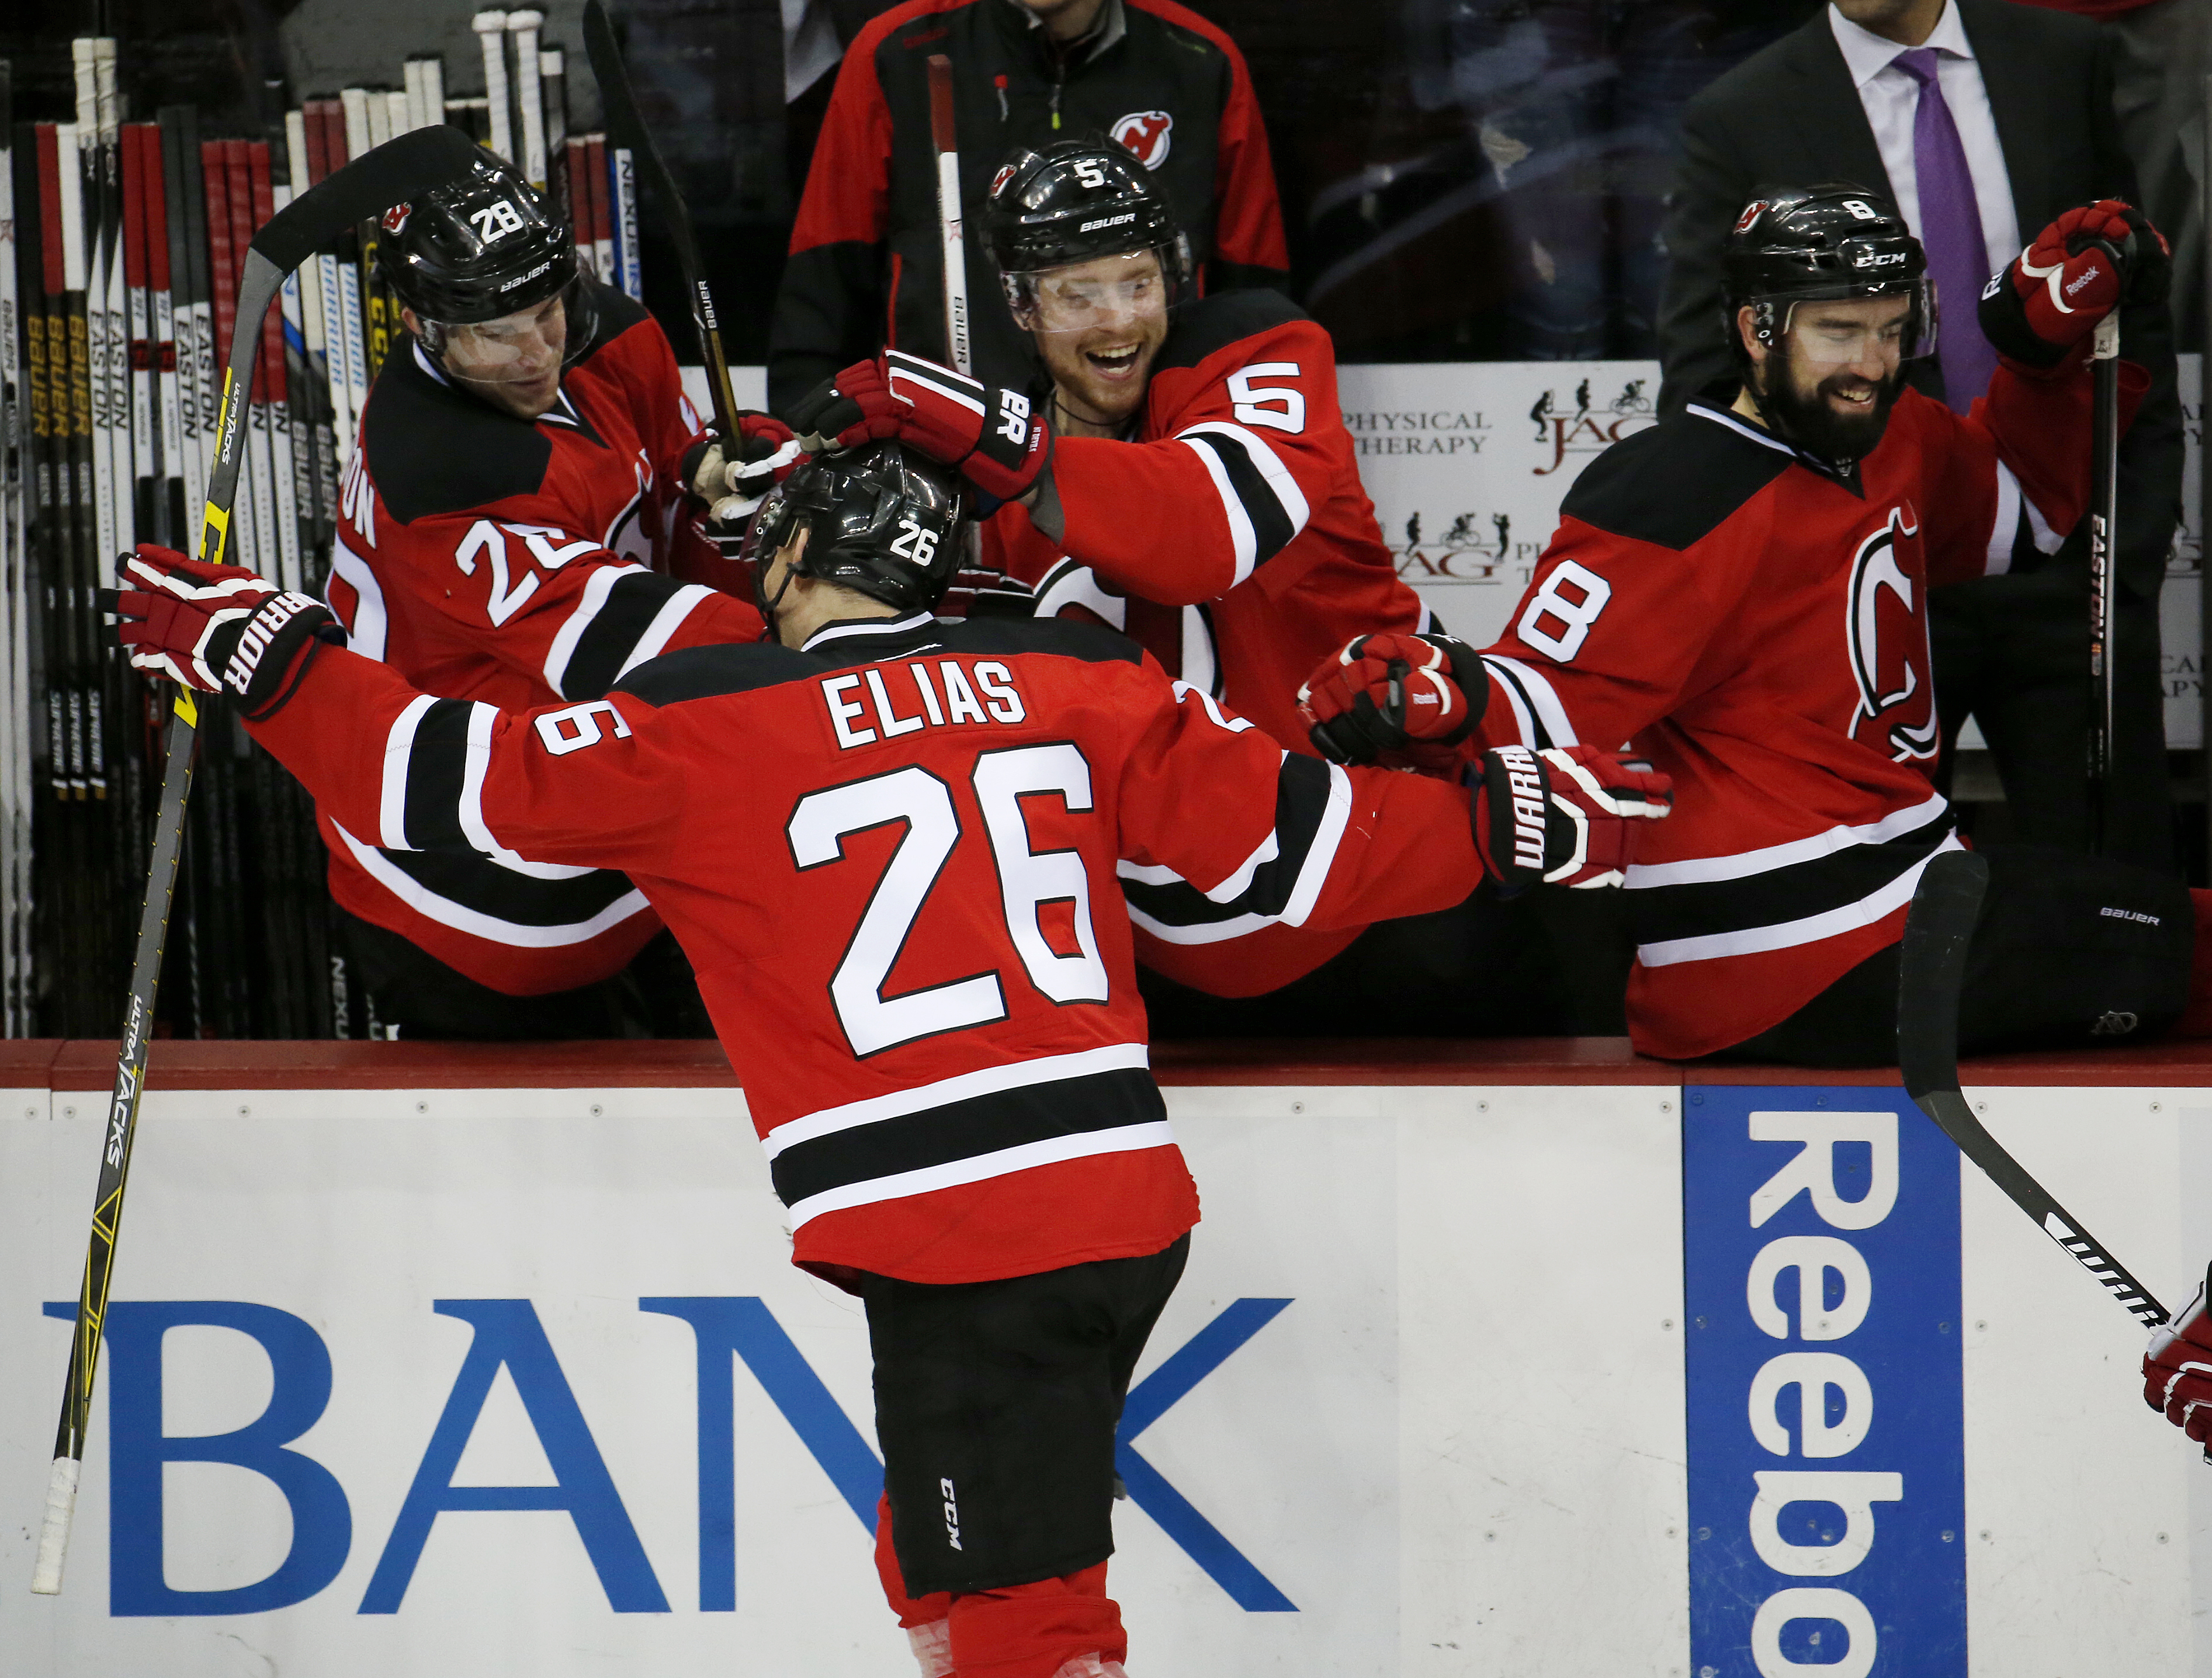 New Jersey Devils left wing Patrik Elias (26), of the Czech Republic, is mobbed by Damon Severson (28), Adam Larsson (5), of Sweden, and David Schlemko (8) after scoring a goal against the Toronto Maple Leafs during the third period of an NHL hockey game,